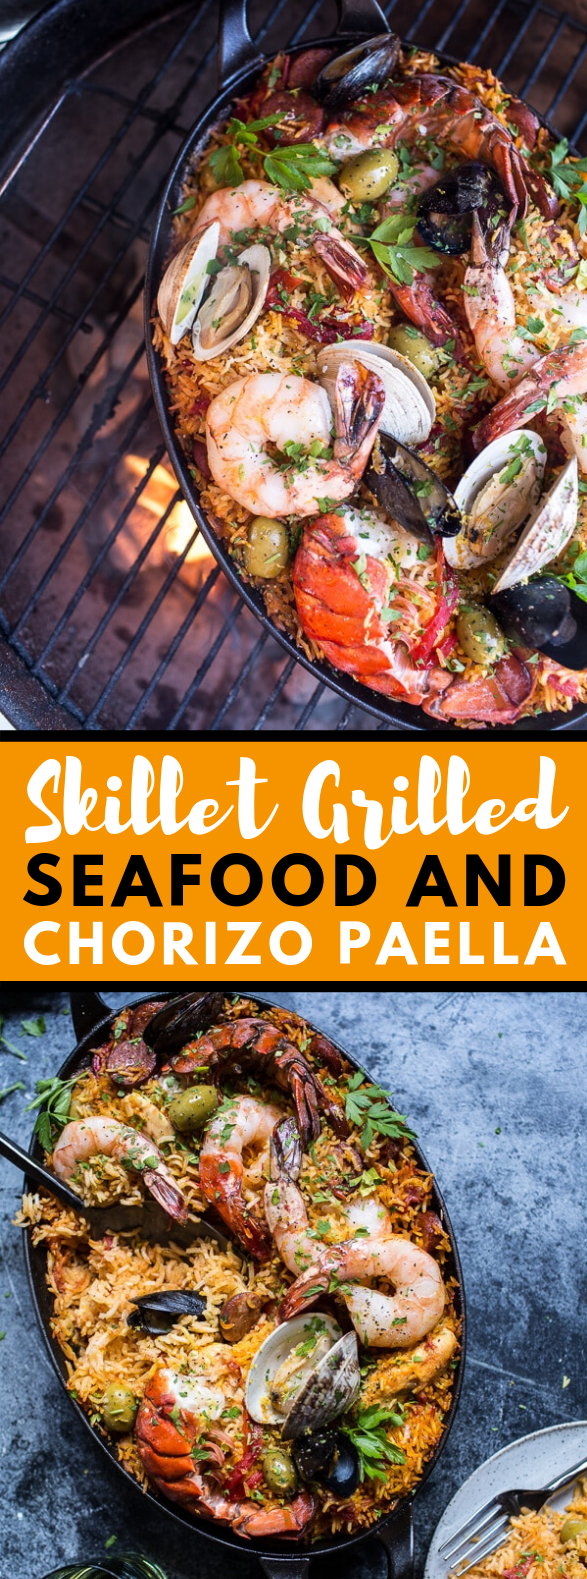 Skillet Grilled Seafood and Chorizo Paella #dinner #food